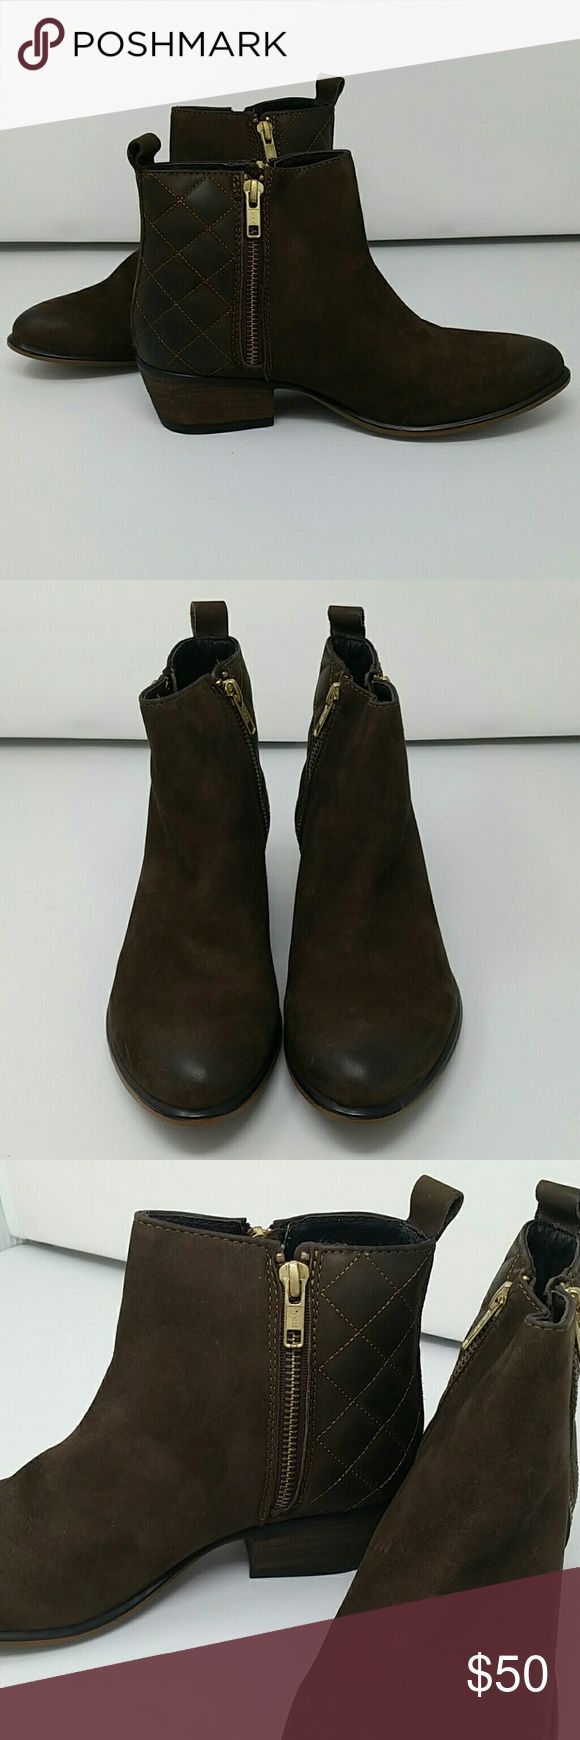 New Steve Madden Brown Suede Ankle Boots Sz 6 New in box Steve Madden ankle boots! Any distressing comes from being in a shoe store, but they've never been worn out and come still in the box! Great for fall! Steve Madden Shoes Ankle Boots & Booties